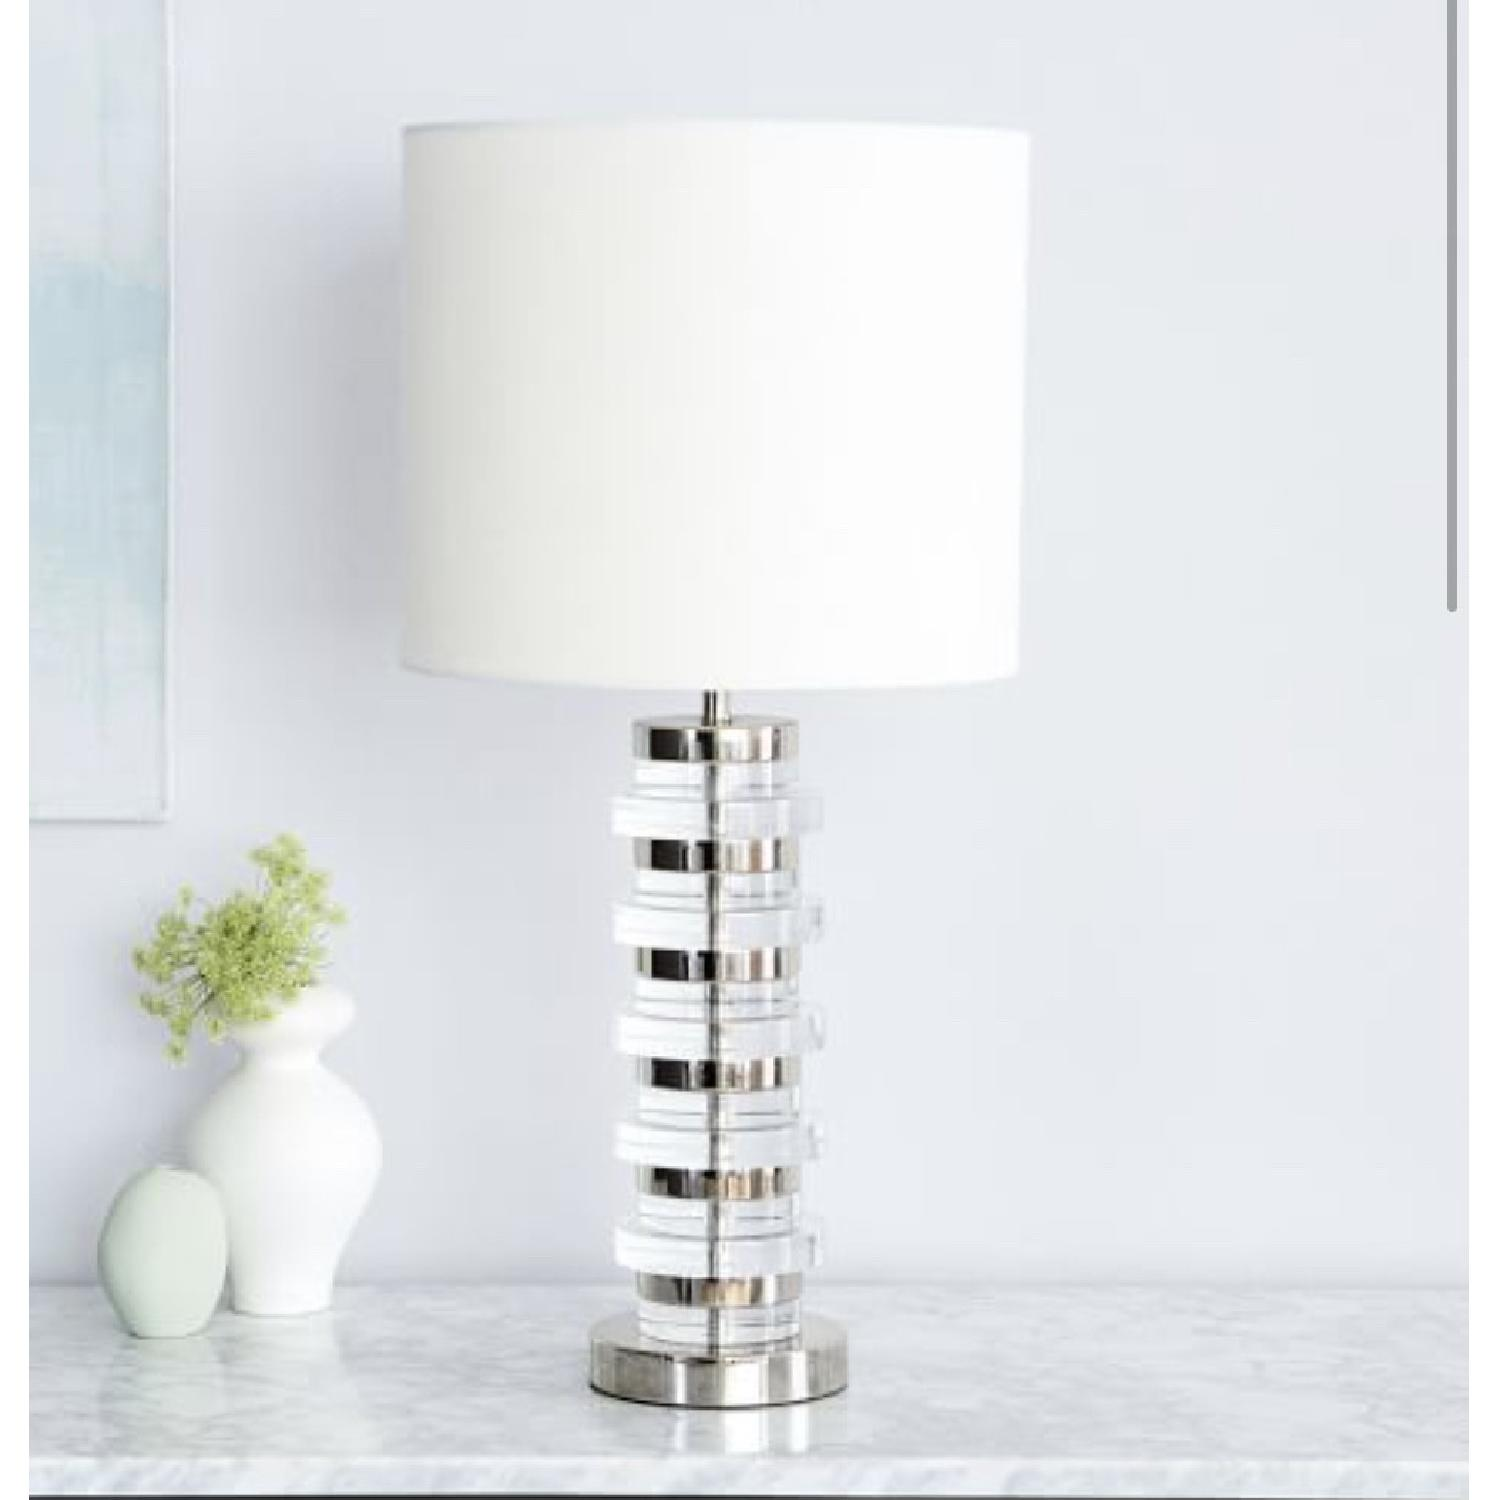 West Elm Clear Disk Table Lamp in Polish Nickel w/ USB - image-1